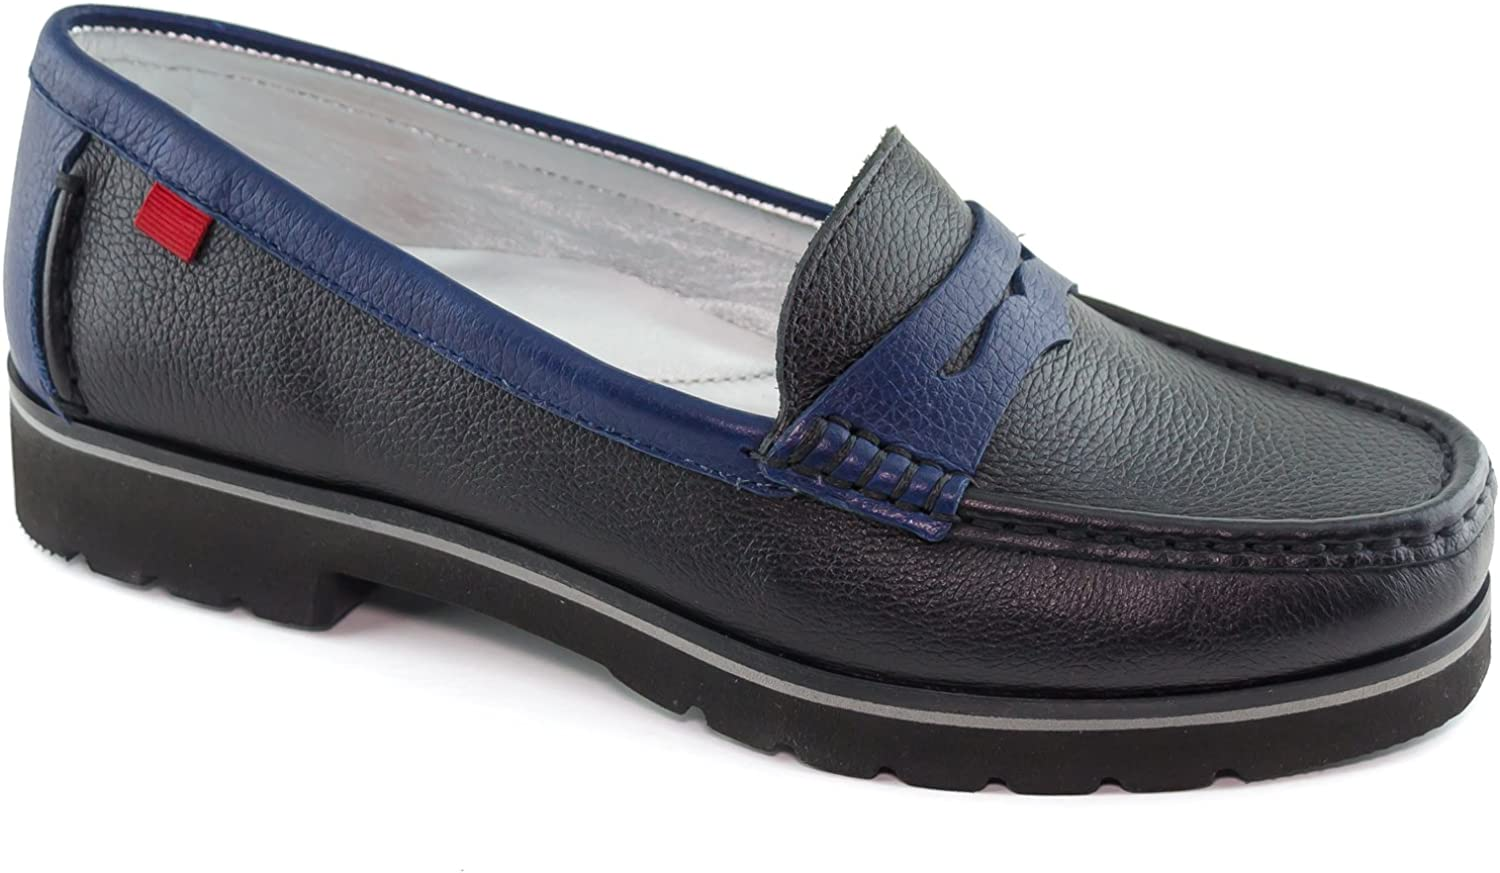 MARC JOSEPH NEW YORK Women's Leather Made in Brazil Tribeca Loafer Driving Style